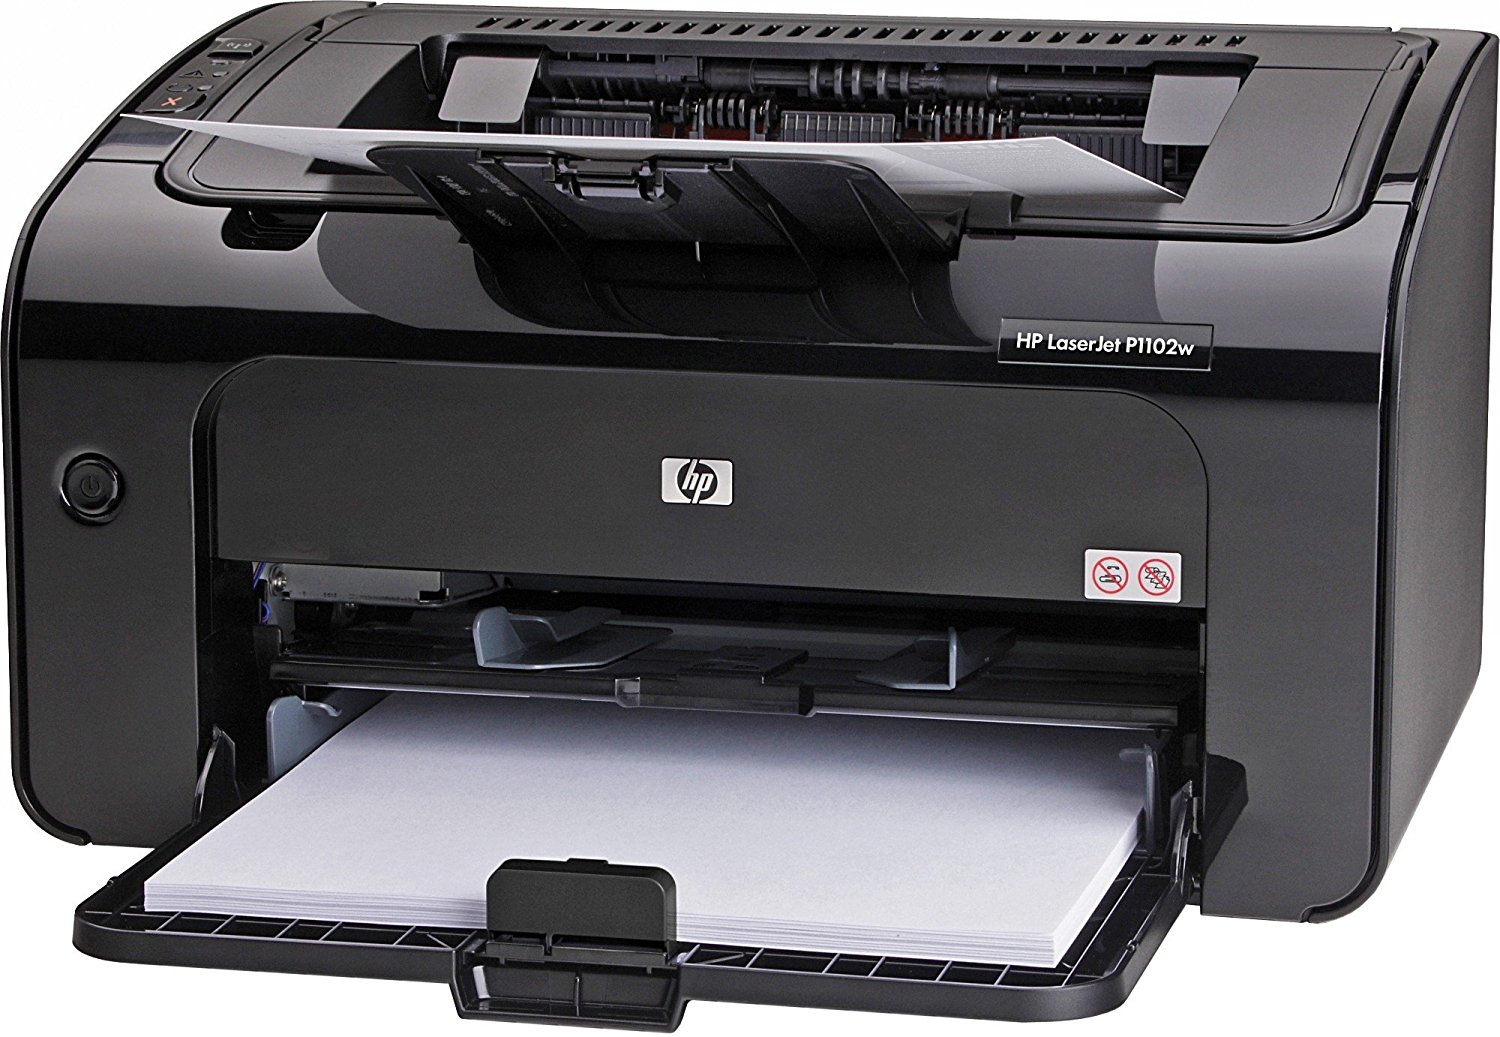 pilote imprimante hp laserjet p1102 gratuit windows 7